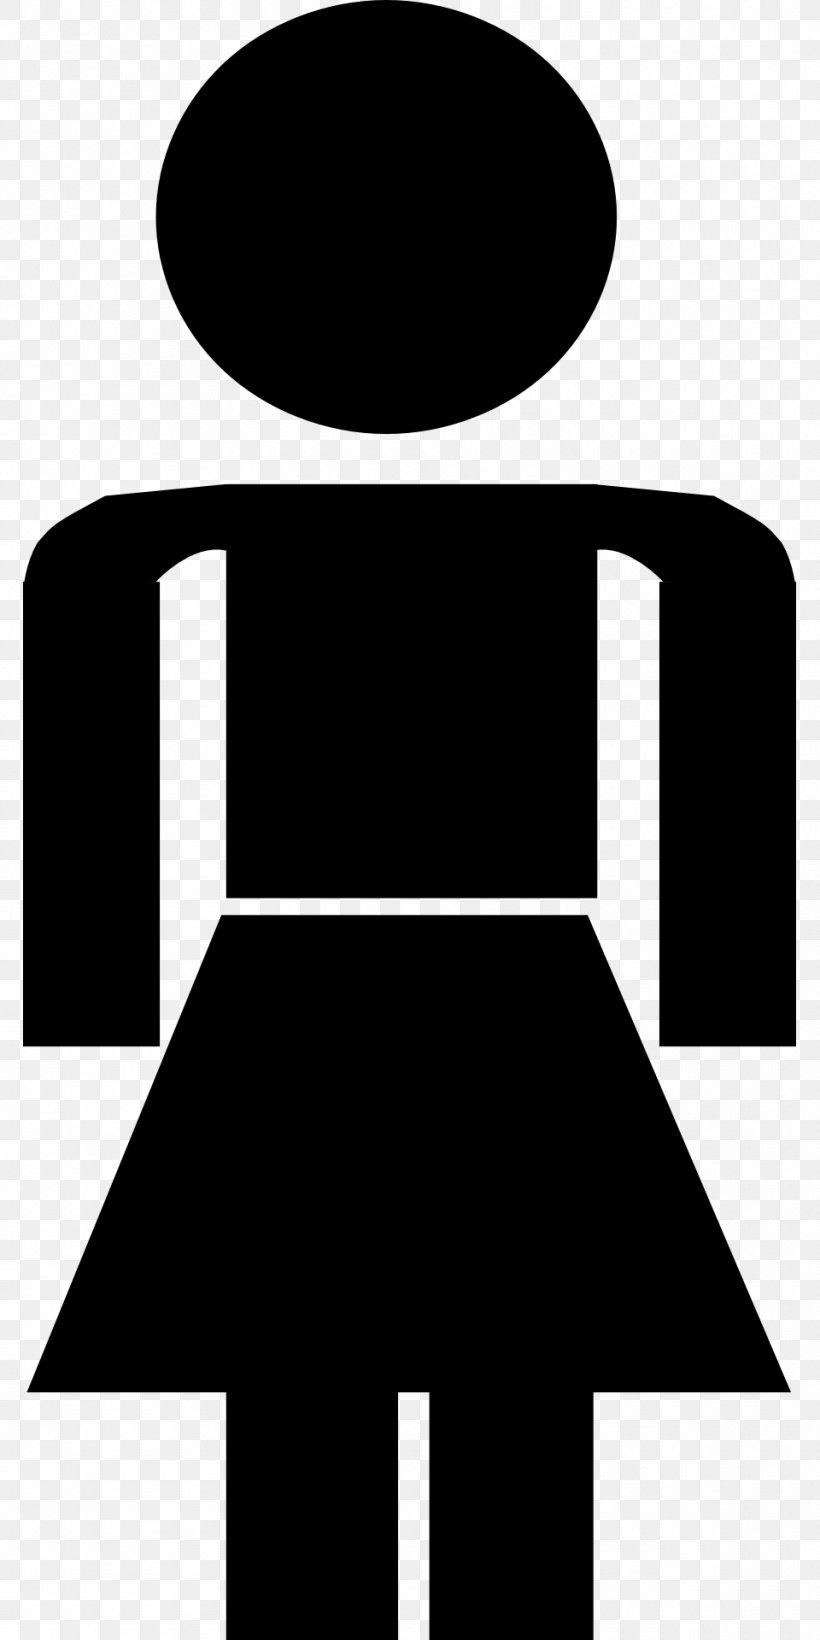 Stick Figure Female Woman Clip Art, PNG, 960x1920px, Stick.